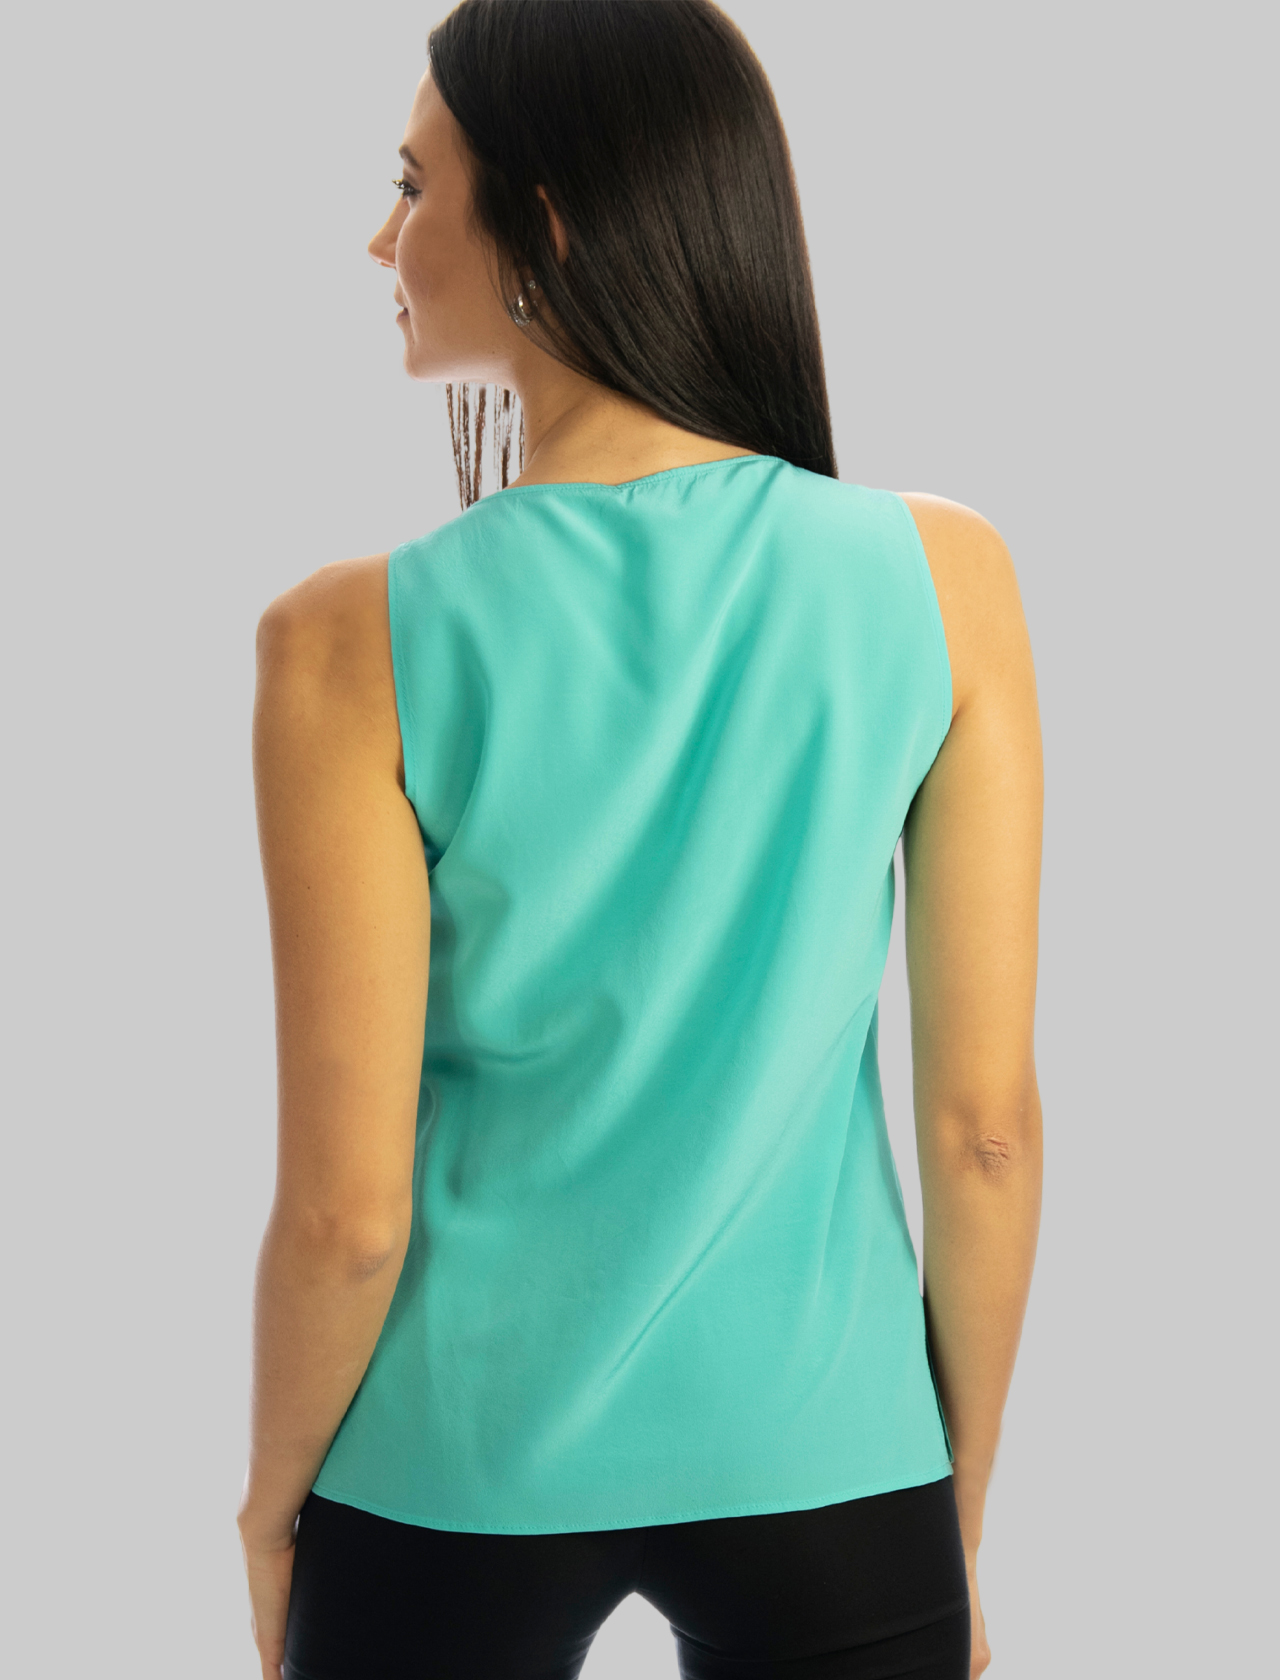 Women's Clothing Turquoise Crepe de Chine Silk Top with V-Neck Maliparmi | Shirts and tops | JP53183004482012